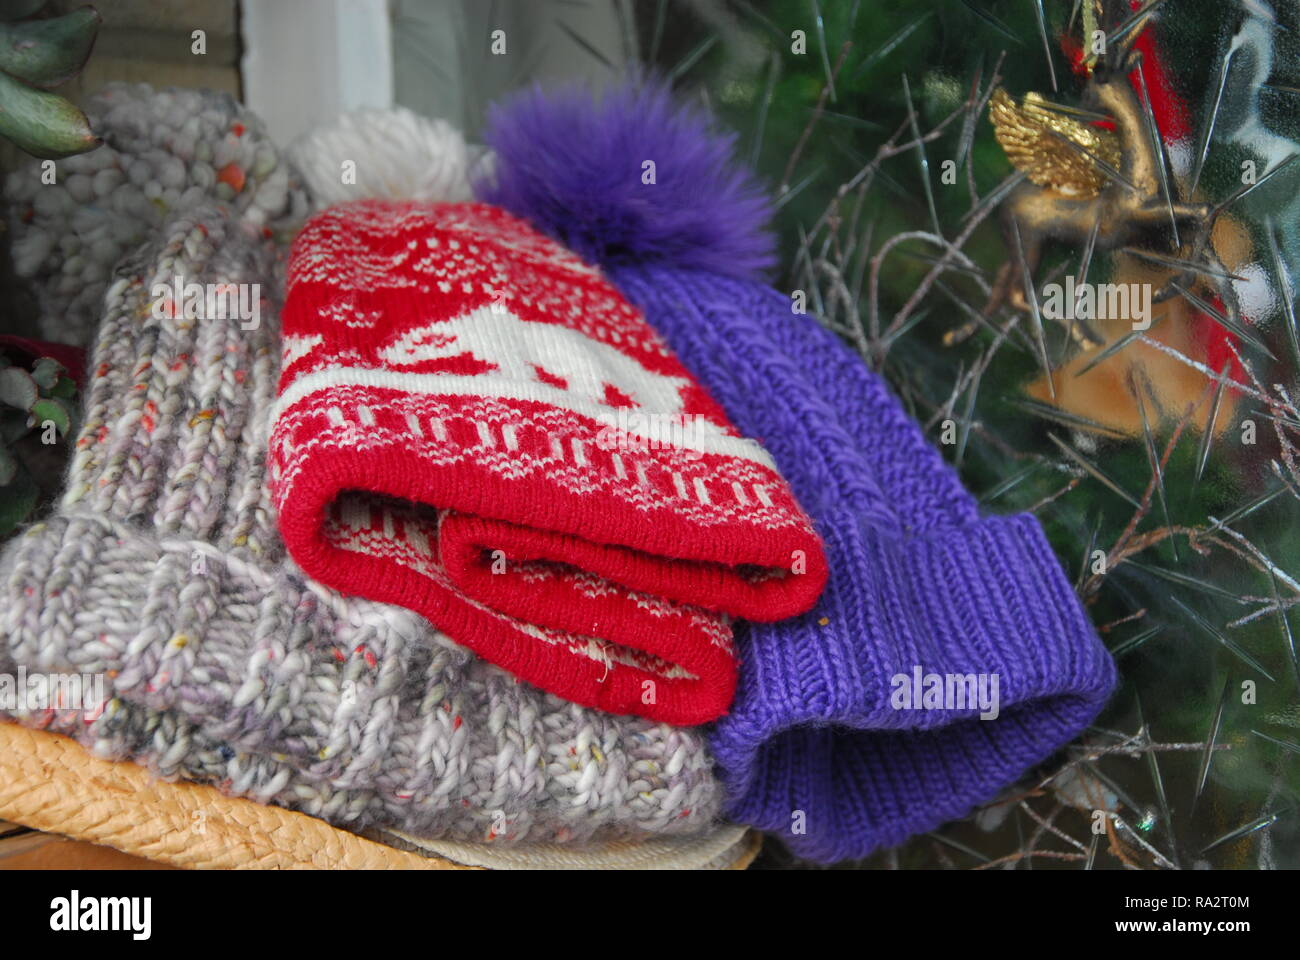 Hats Knitted Imágenes De Stock   Hats Knitted Fotos De Stock - Alamy fff093e8c01